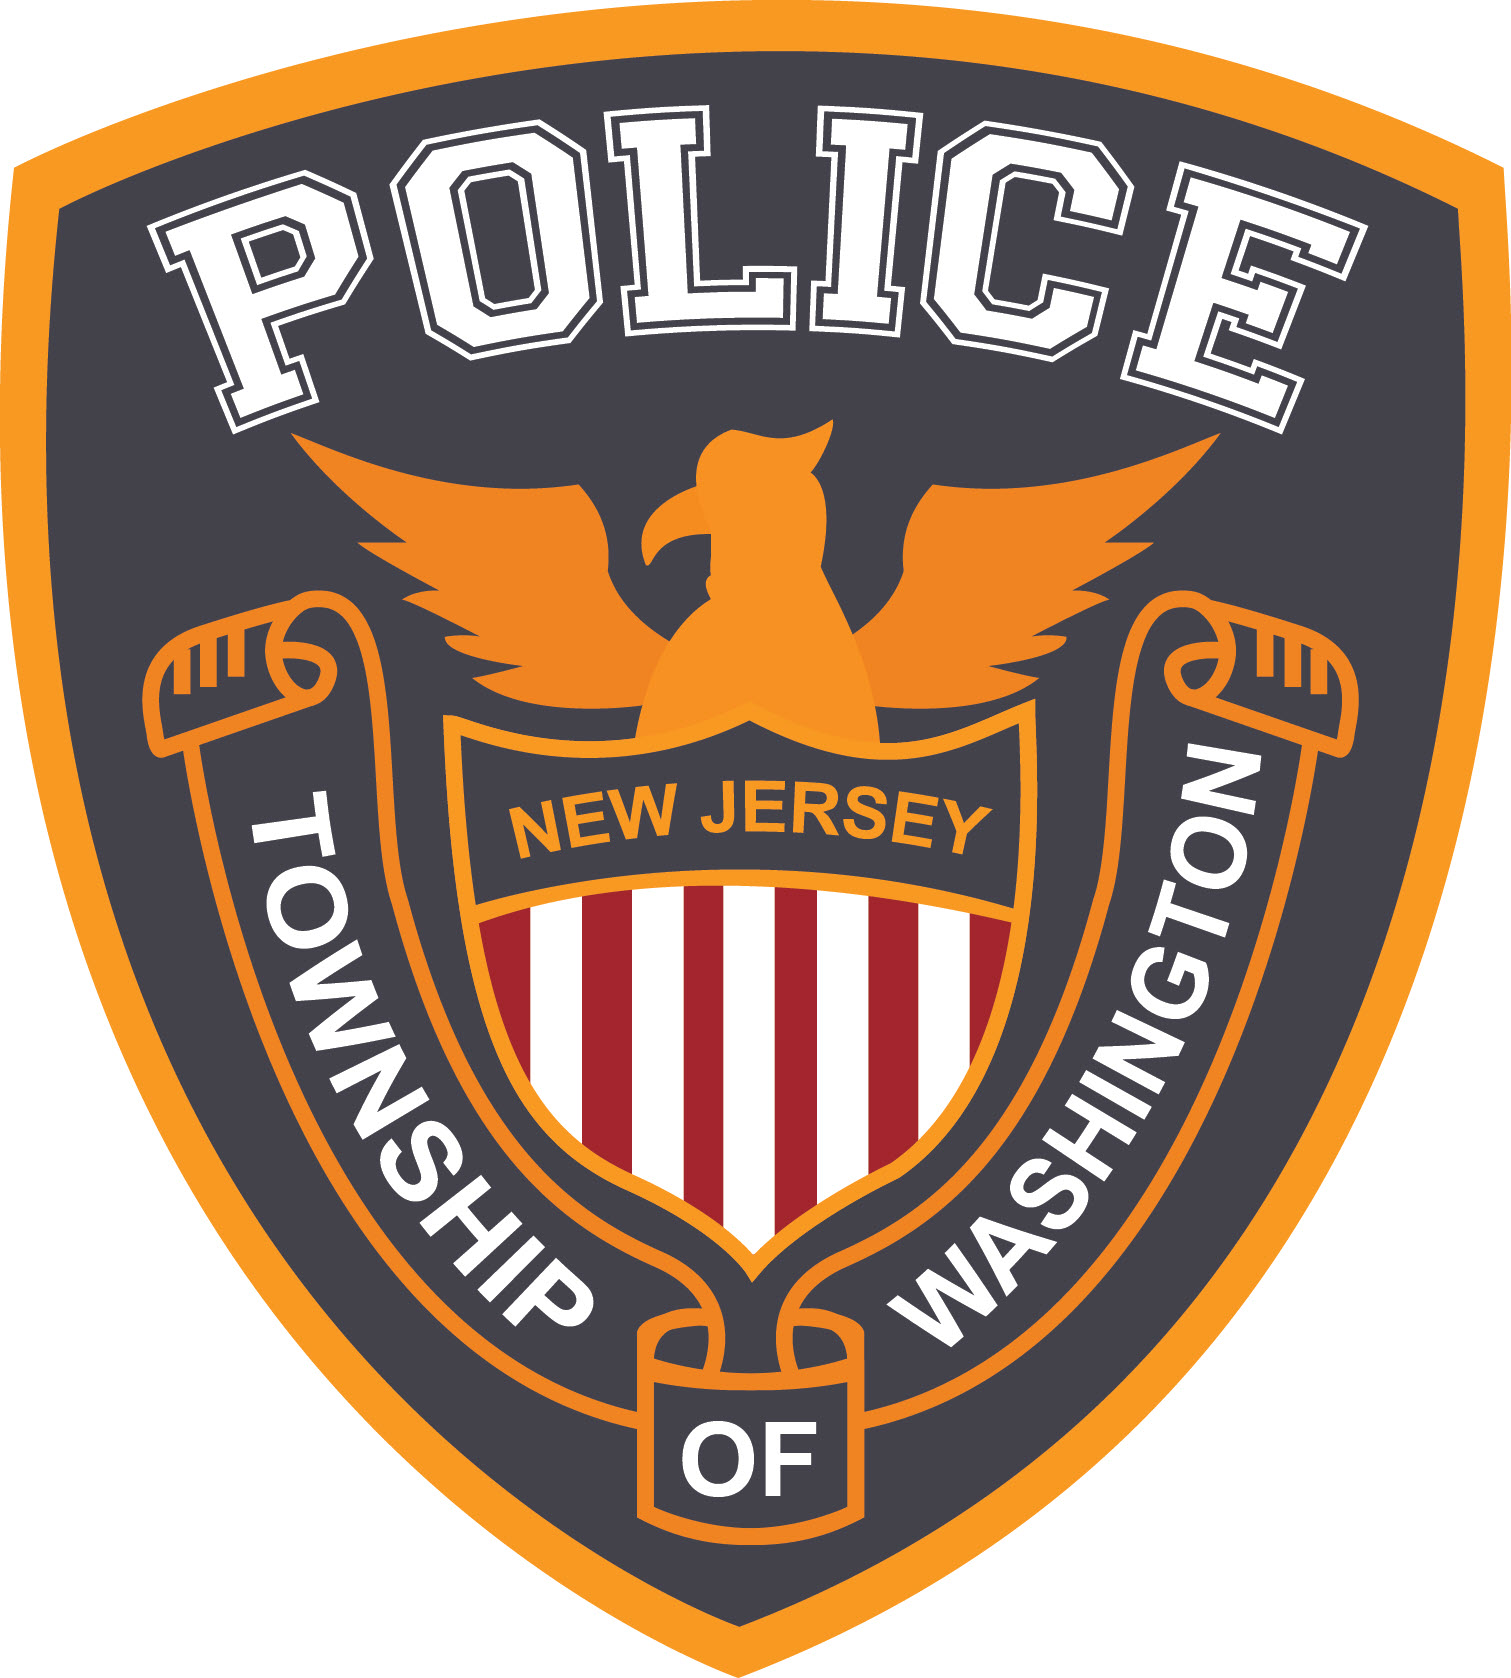 Township of Washington (Bergen County), NJ Public Safety Jobs